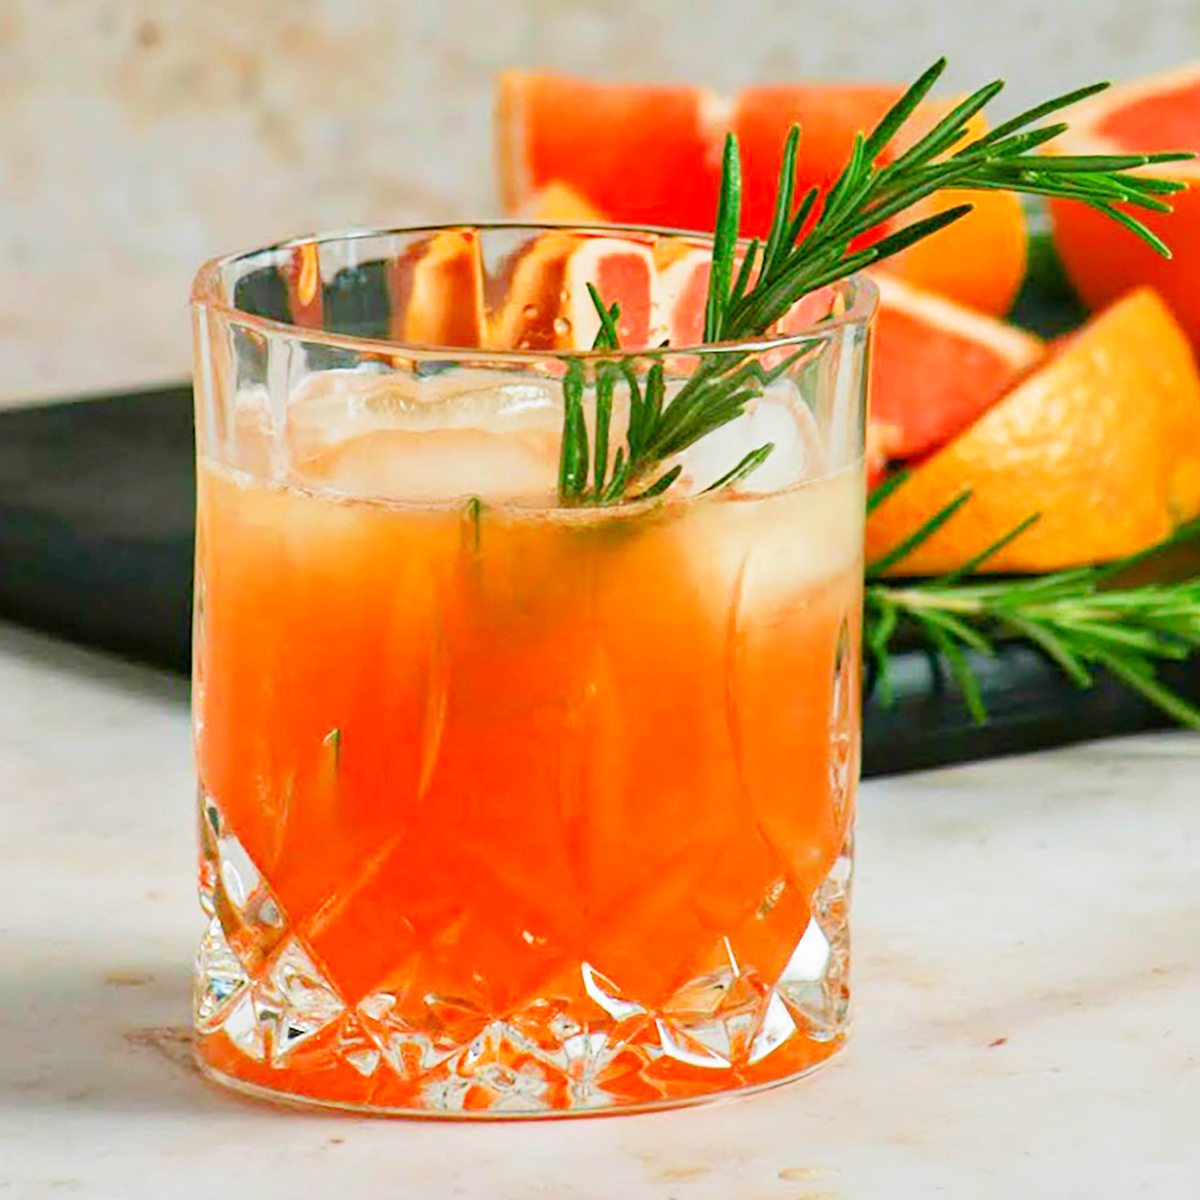 old fashion cocktail glass filled with a grilled grapefruit greyhound cocktail with a sprig of fresh rosemary over ice.